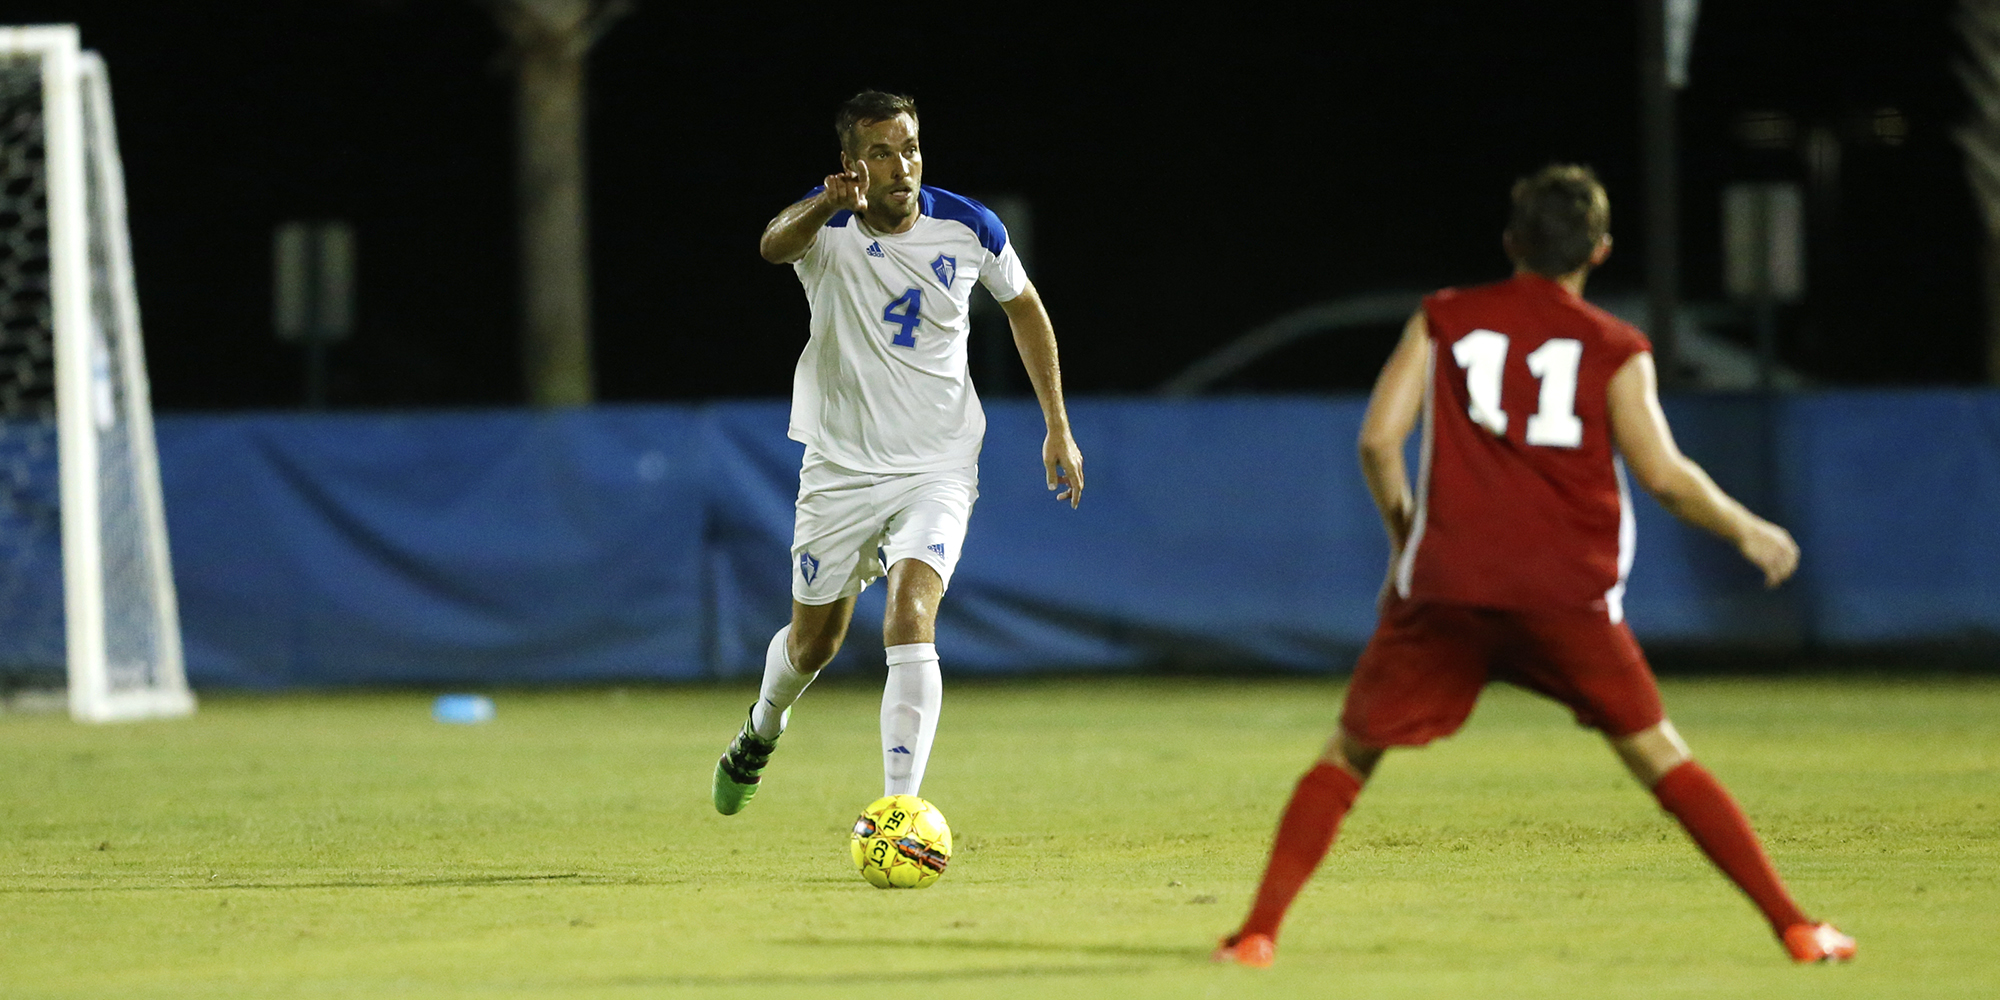 Top-Ranked Men's Soccer Stunned by #19 West Alabama